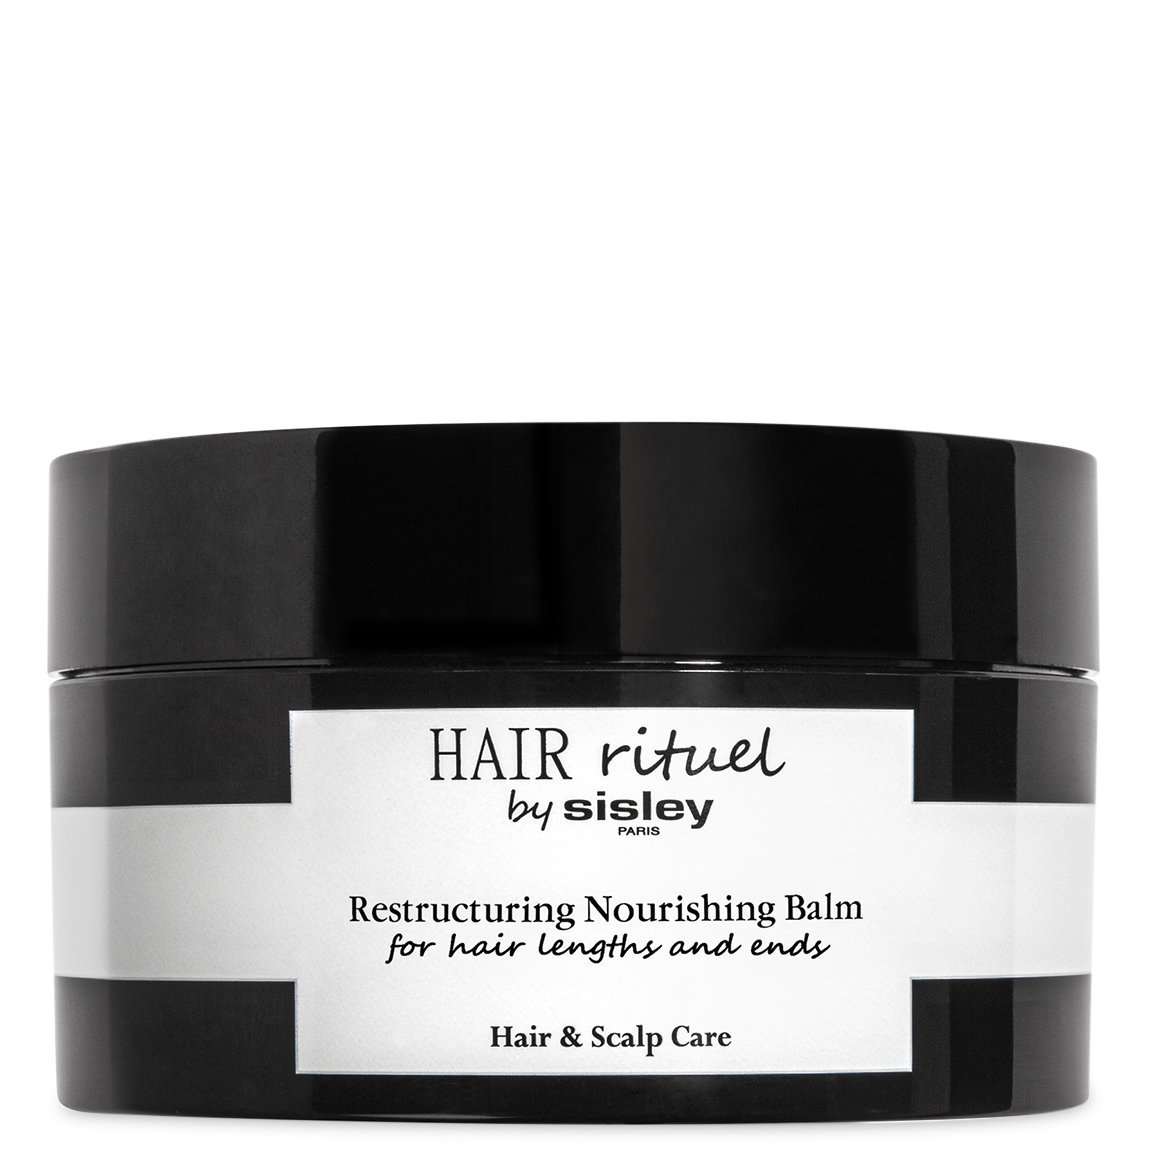 Sisley-Paris Restructuring Nourishing Balm for Hair Lengths and Ends alternative view 1 - product swatch.